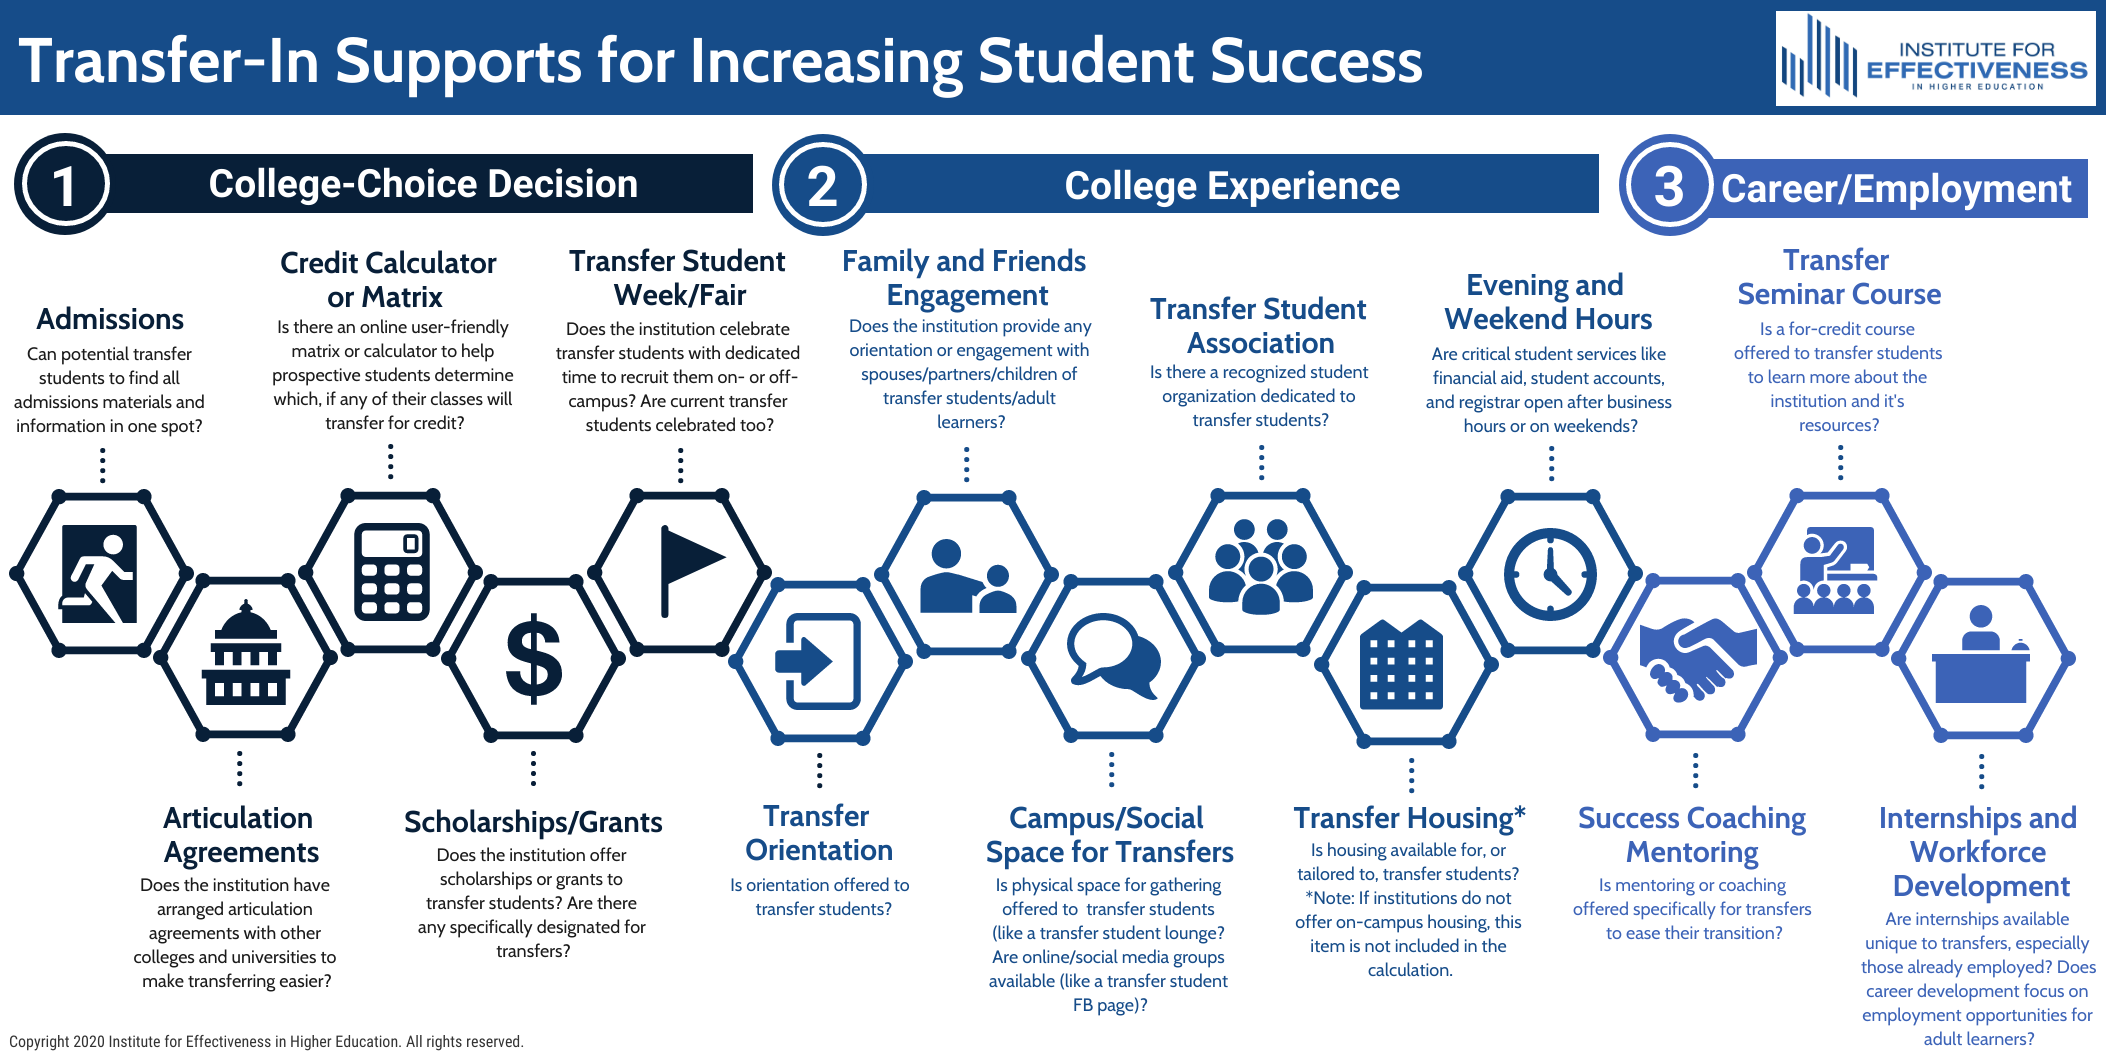 Transfer-In Student Supports - RealityCheck